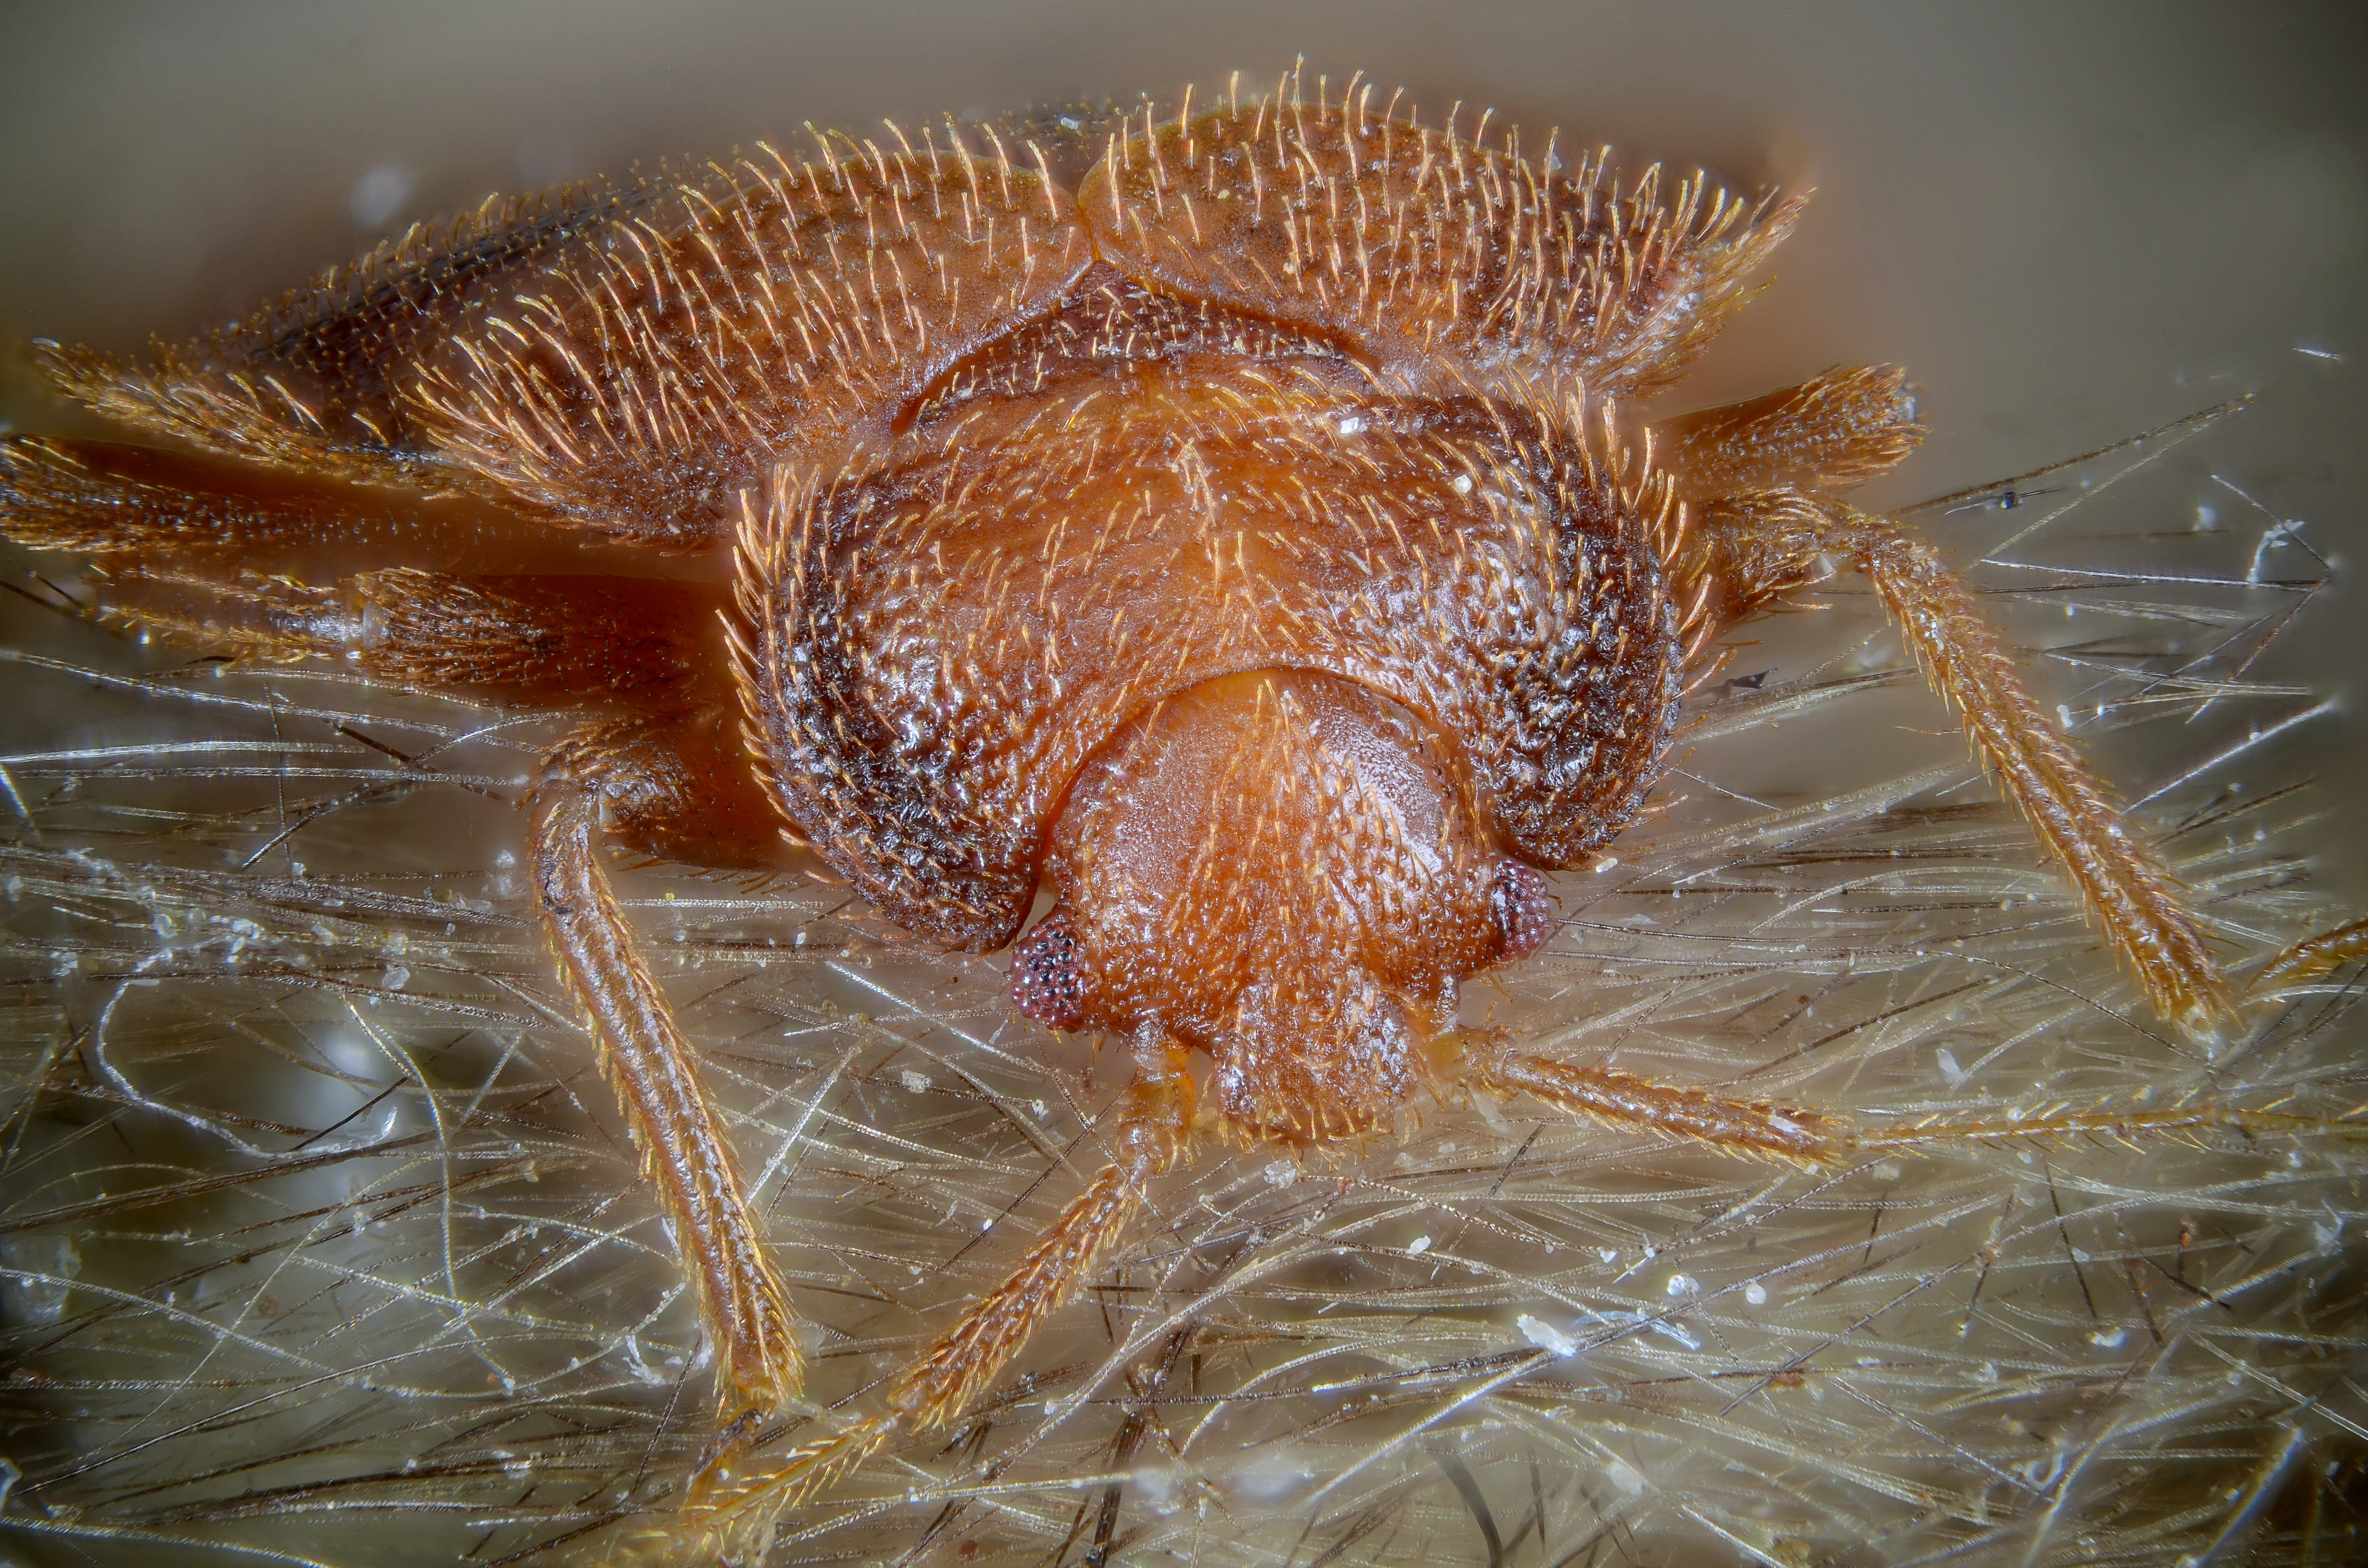 Can Bed Bugs Detect Infread Light